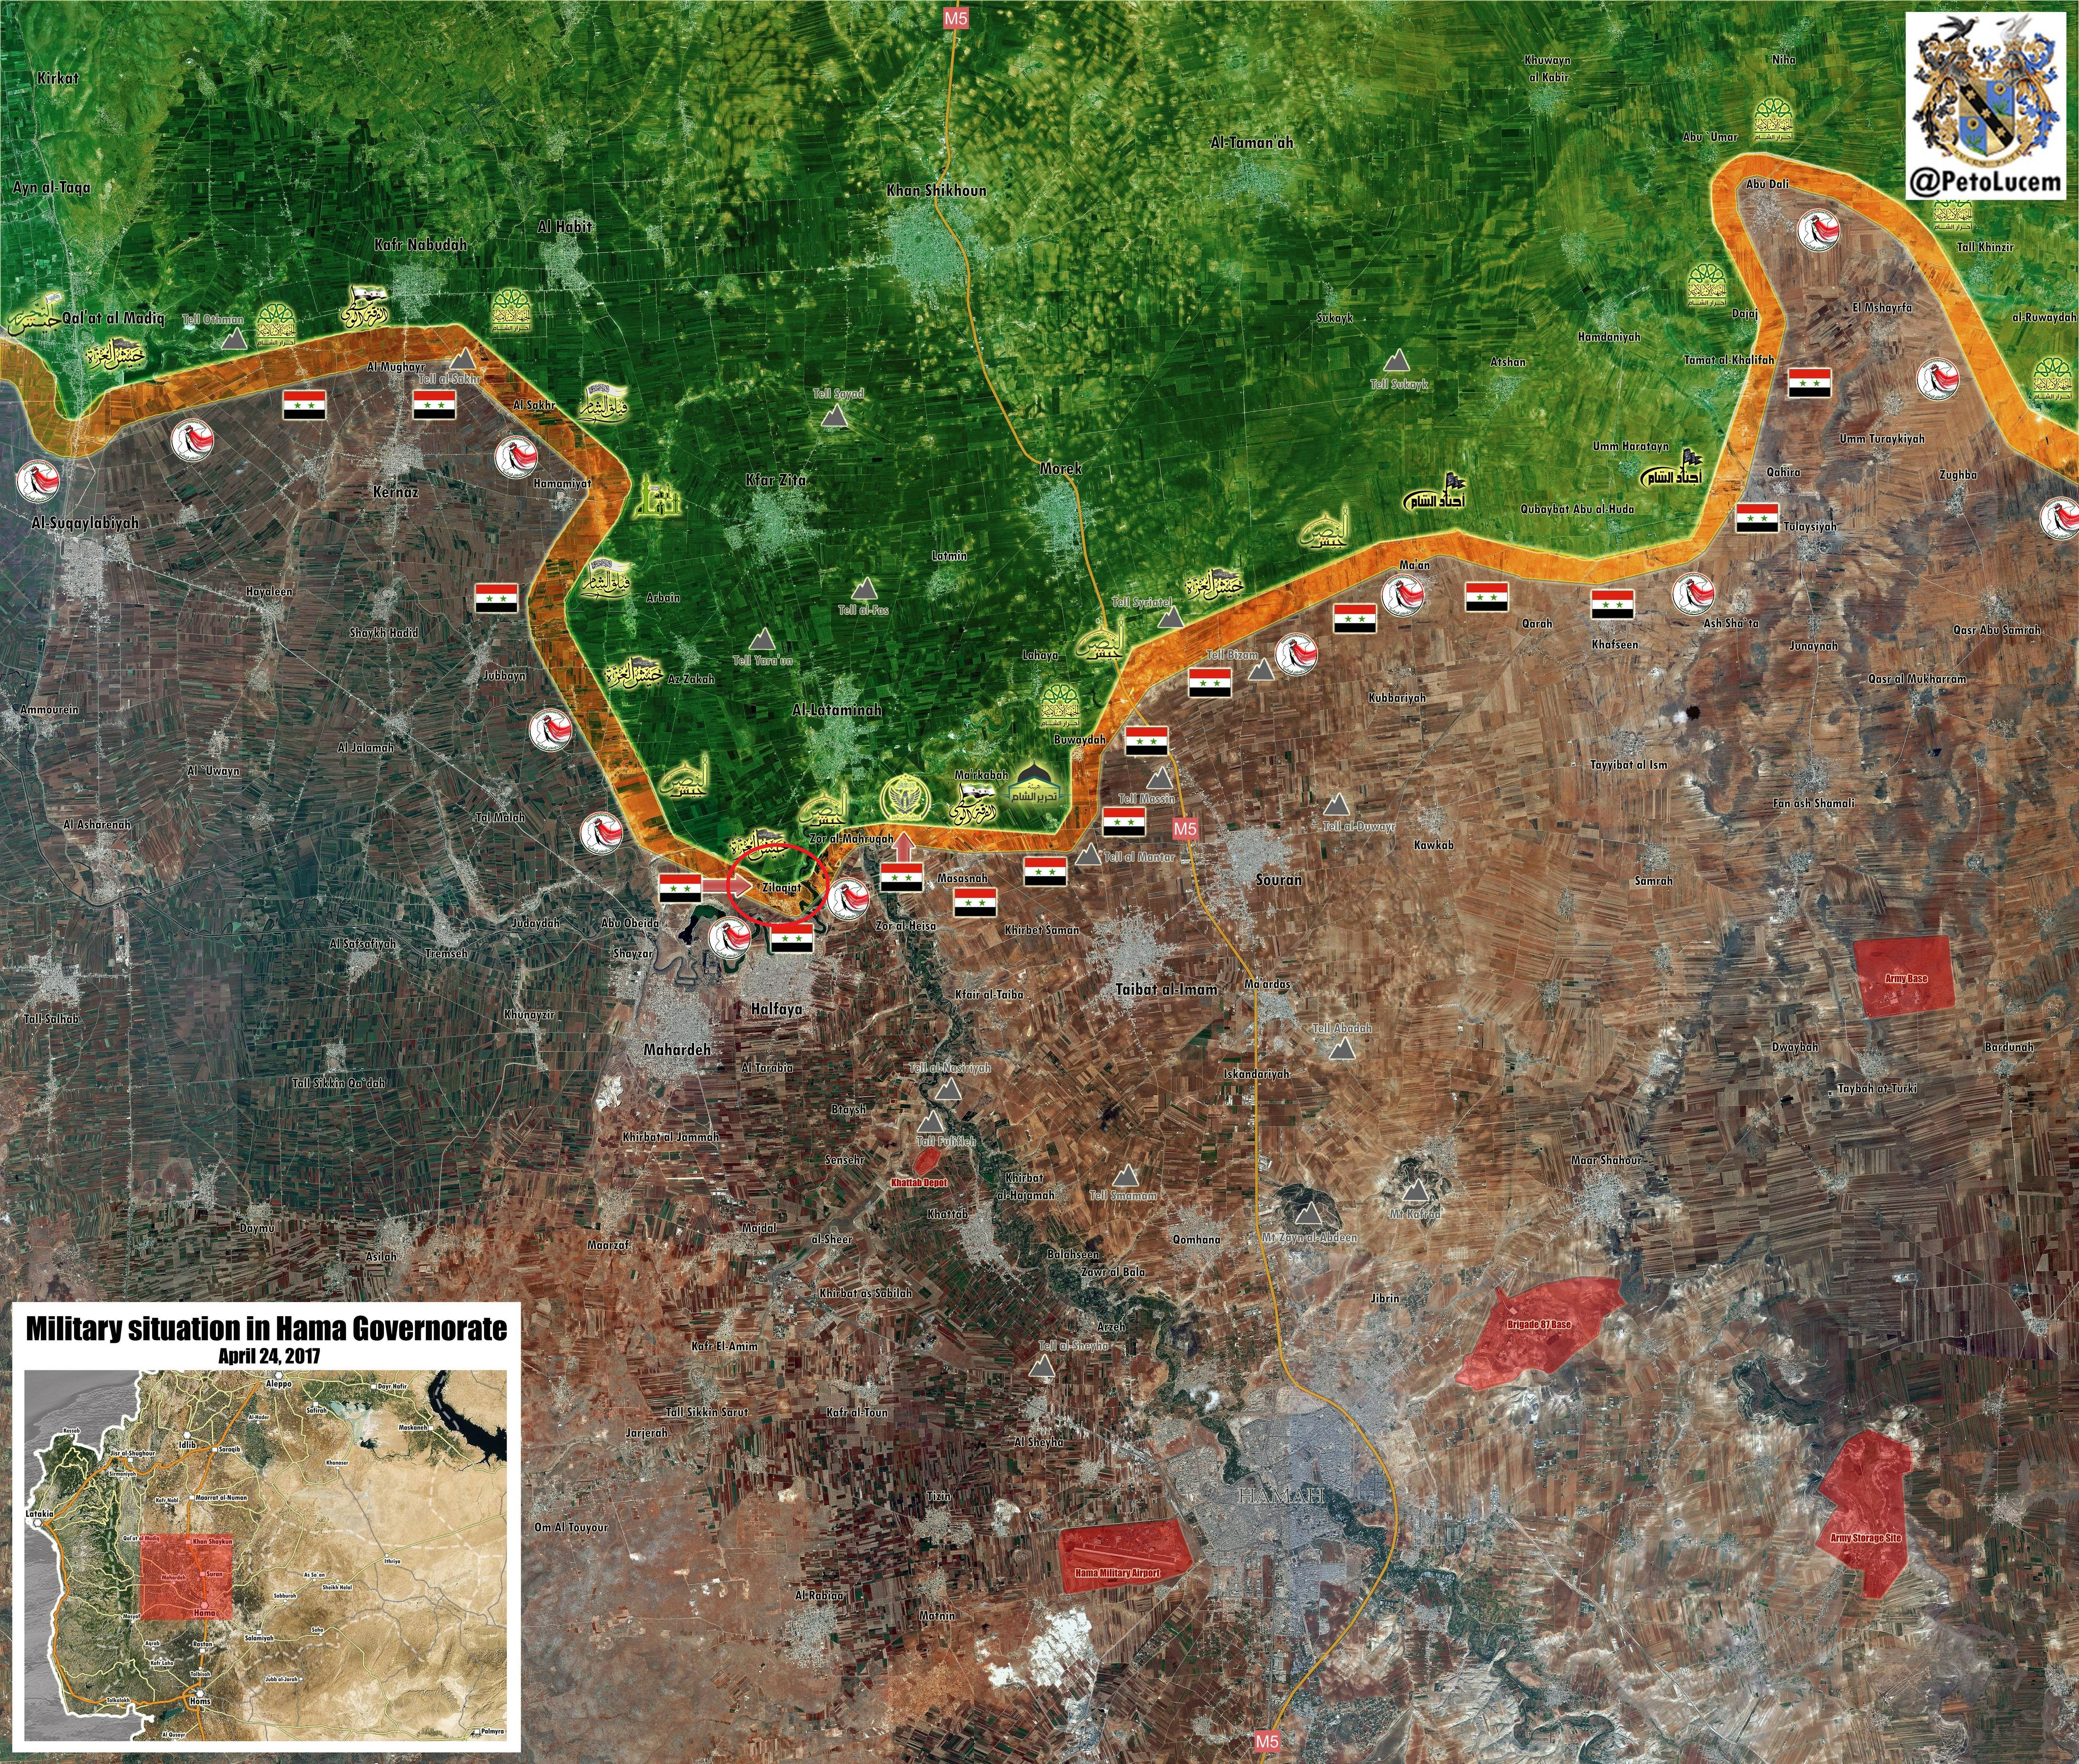 Syrian Army Gains Points In Al-Zallaqiat Area In Northern Hama